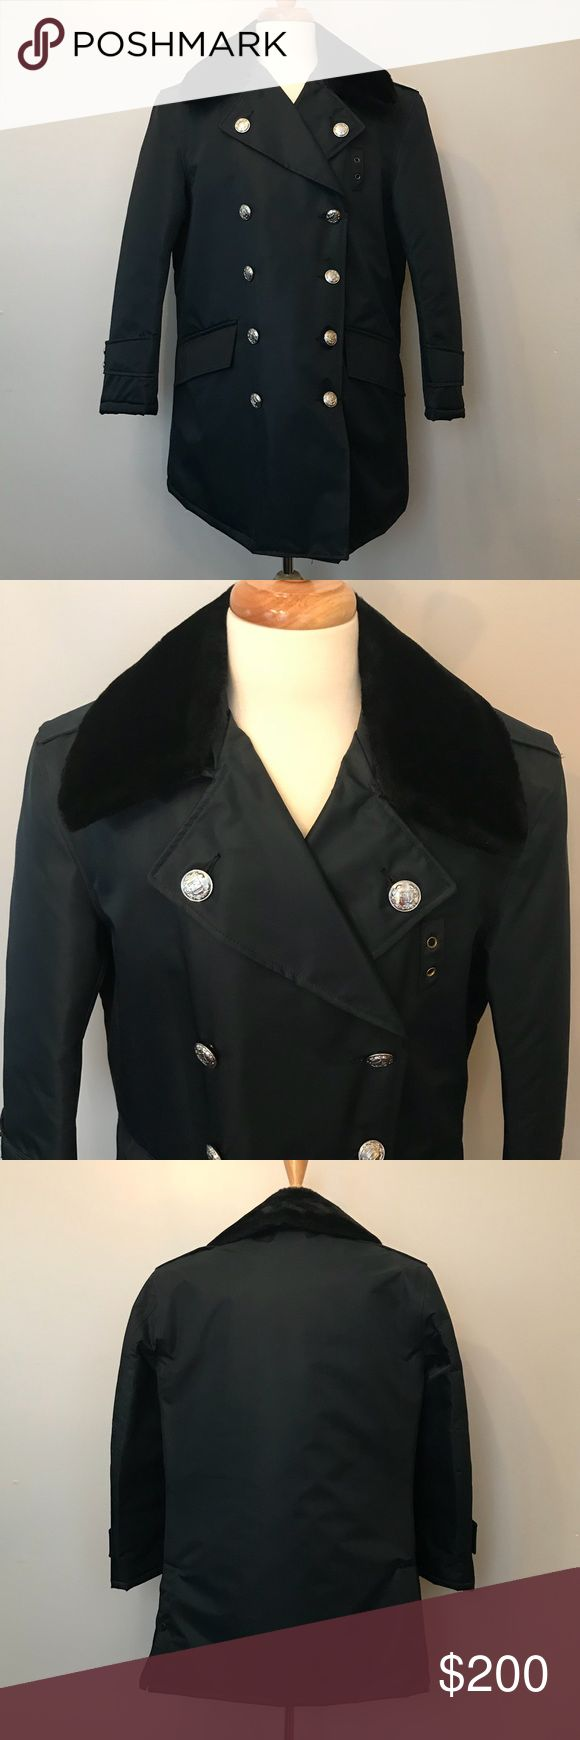 """New Nylolite by Blauer Navy Parka FD Deadstock Vintage Nylolite by Blauer Men's Parka Navy Blue with Silver Buttons Faux Fur Removable Collar Buttons say """"FD"""" Unworn Size 40S 23"""" underarm to underarm measured flat  33"""" long shoulder to hem Nylolite by Blauer Jackets & Coats"""